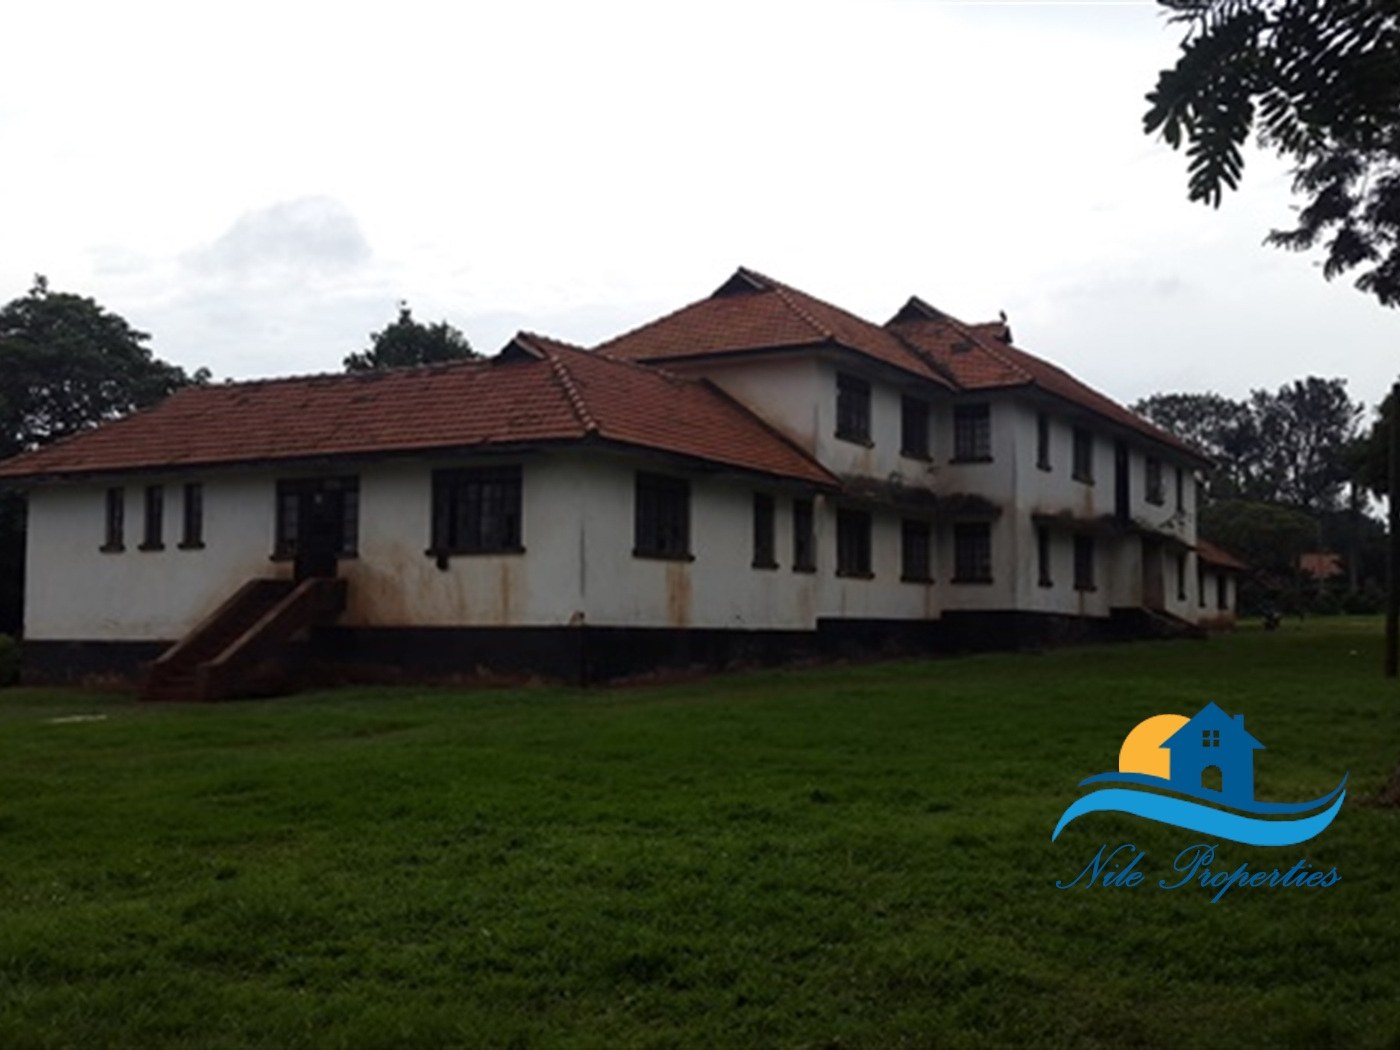 20 Bedroom House For Sale In Jinja Jinja Uganda Code 61364 29 03 2021